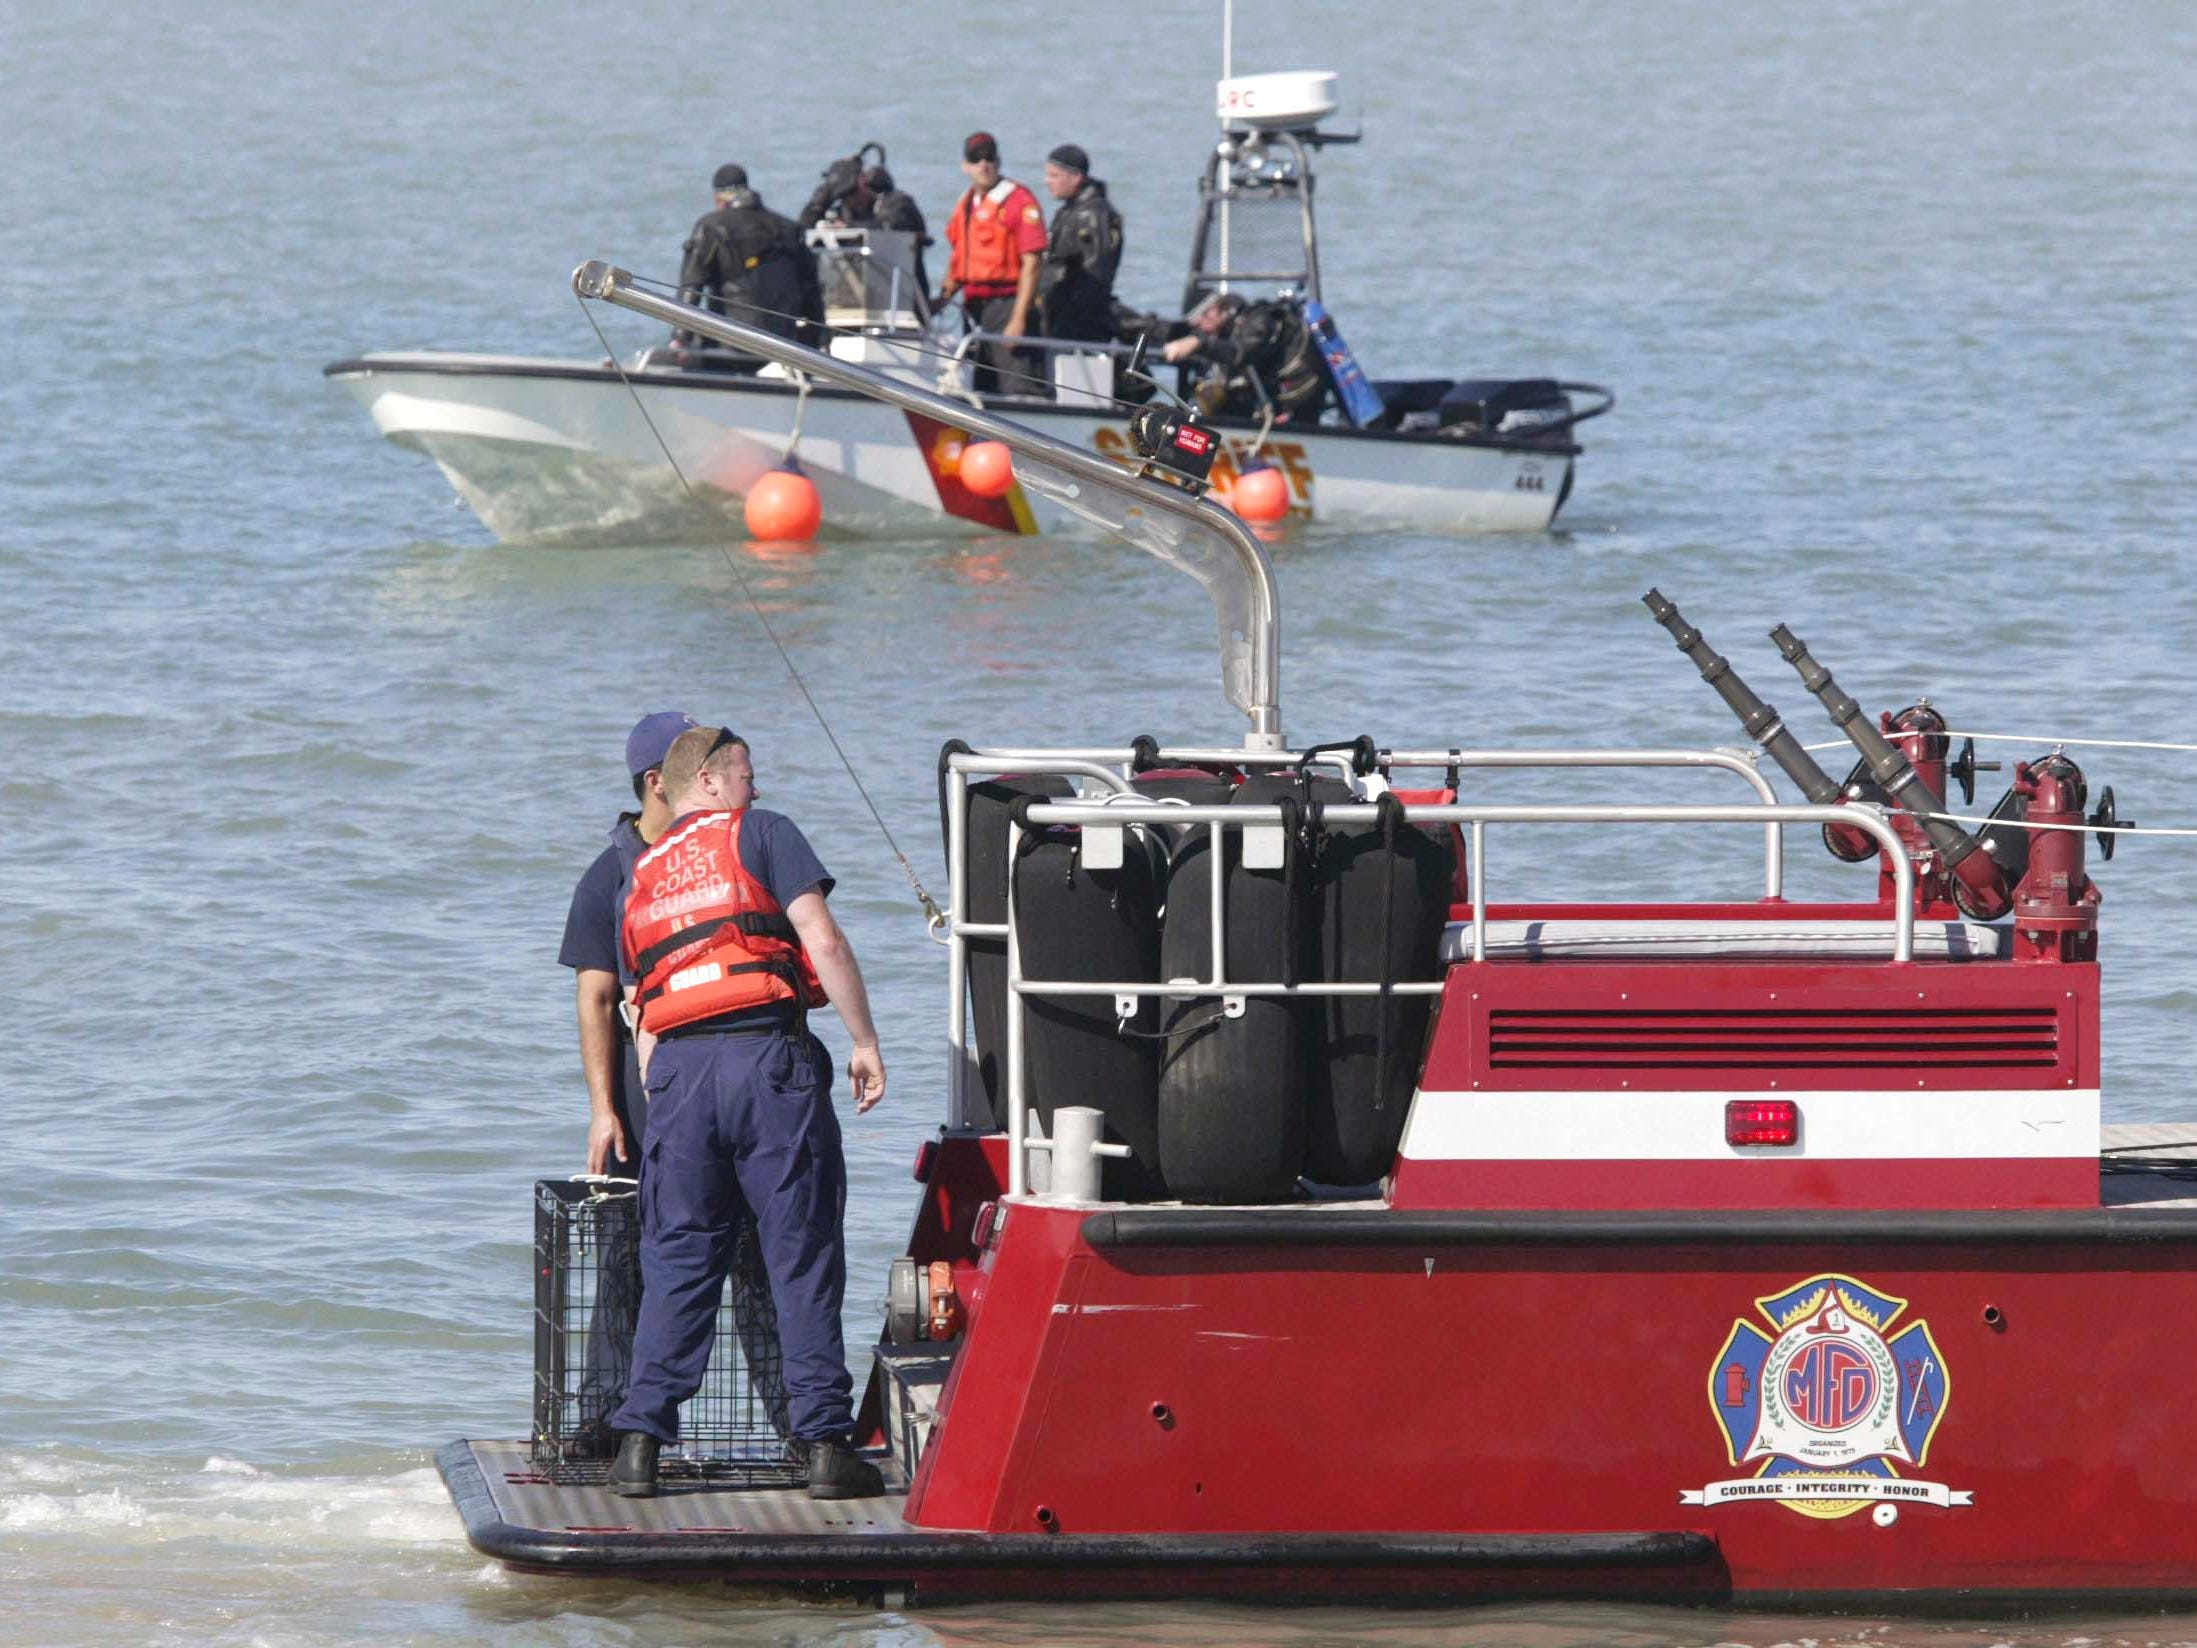 Rescue officials scan the waters of the Sheboygan, Wis., lakefront Aug. 11, 2008, for John Duong. Duong, 15, of 2623 N. 36th St., was swept underwater by high waves Saturday afternoon while swimming with four friends at North Beach at Deland Park.  FILE PHOTO